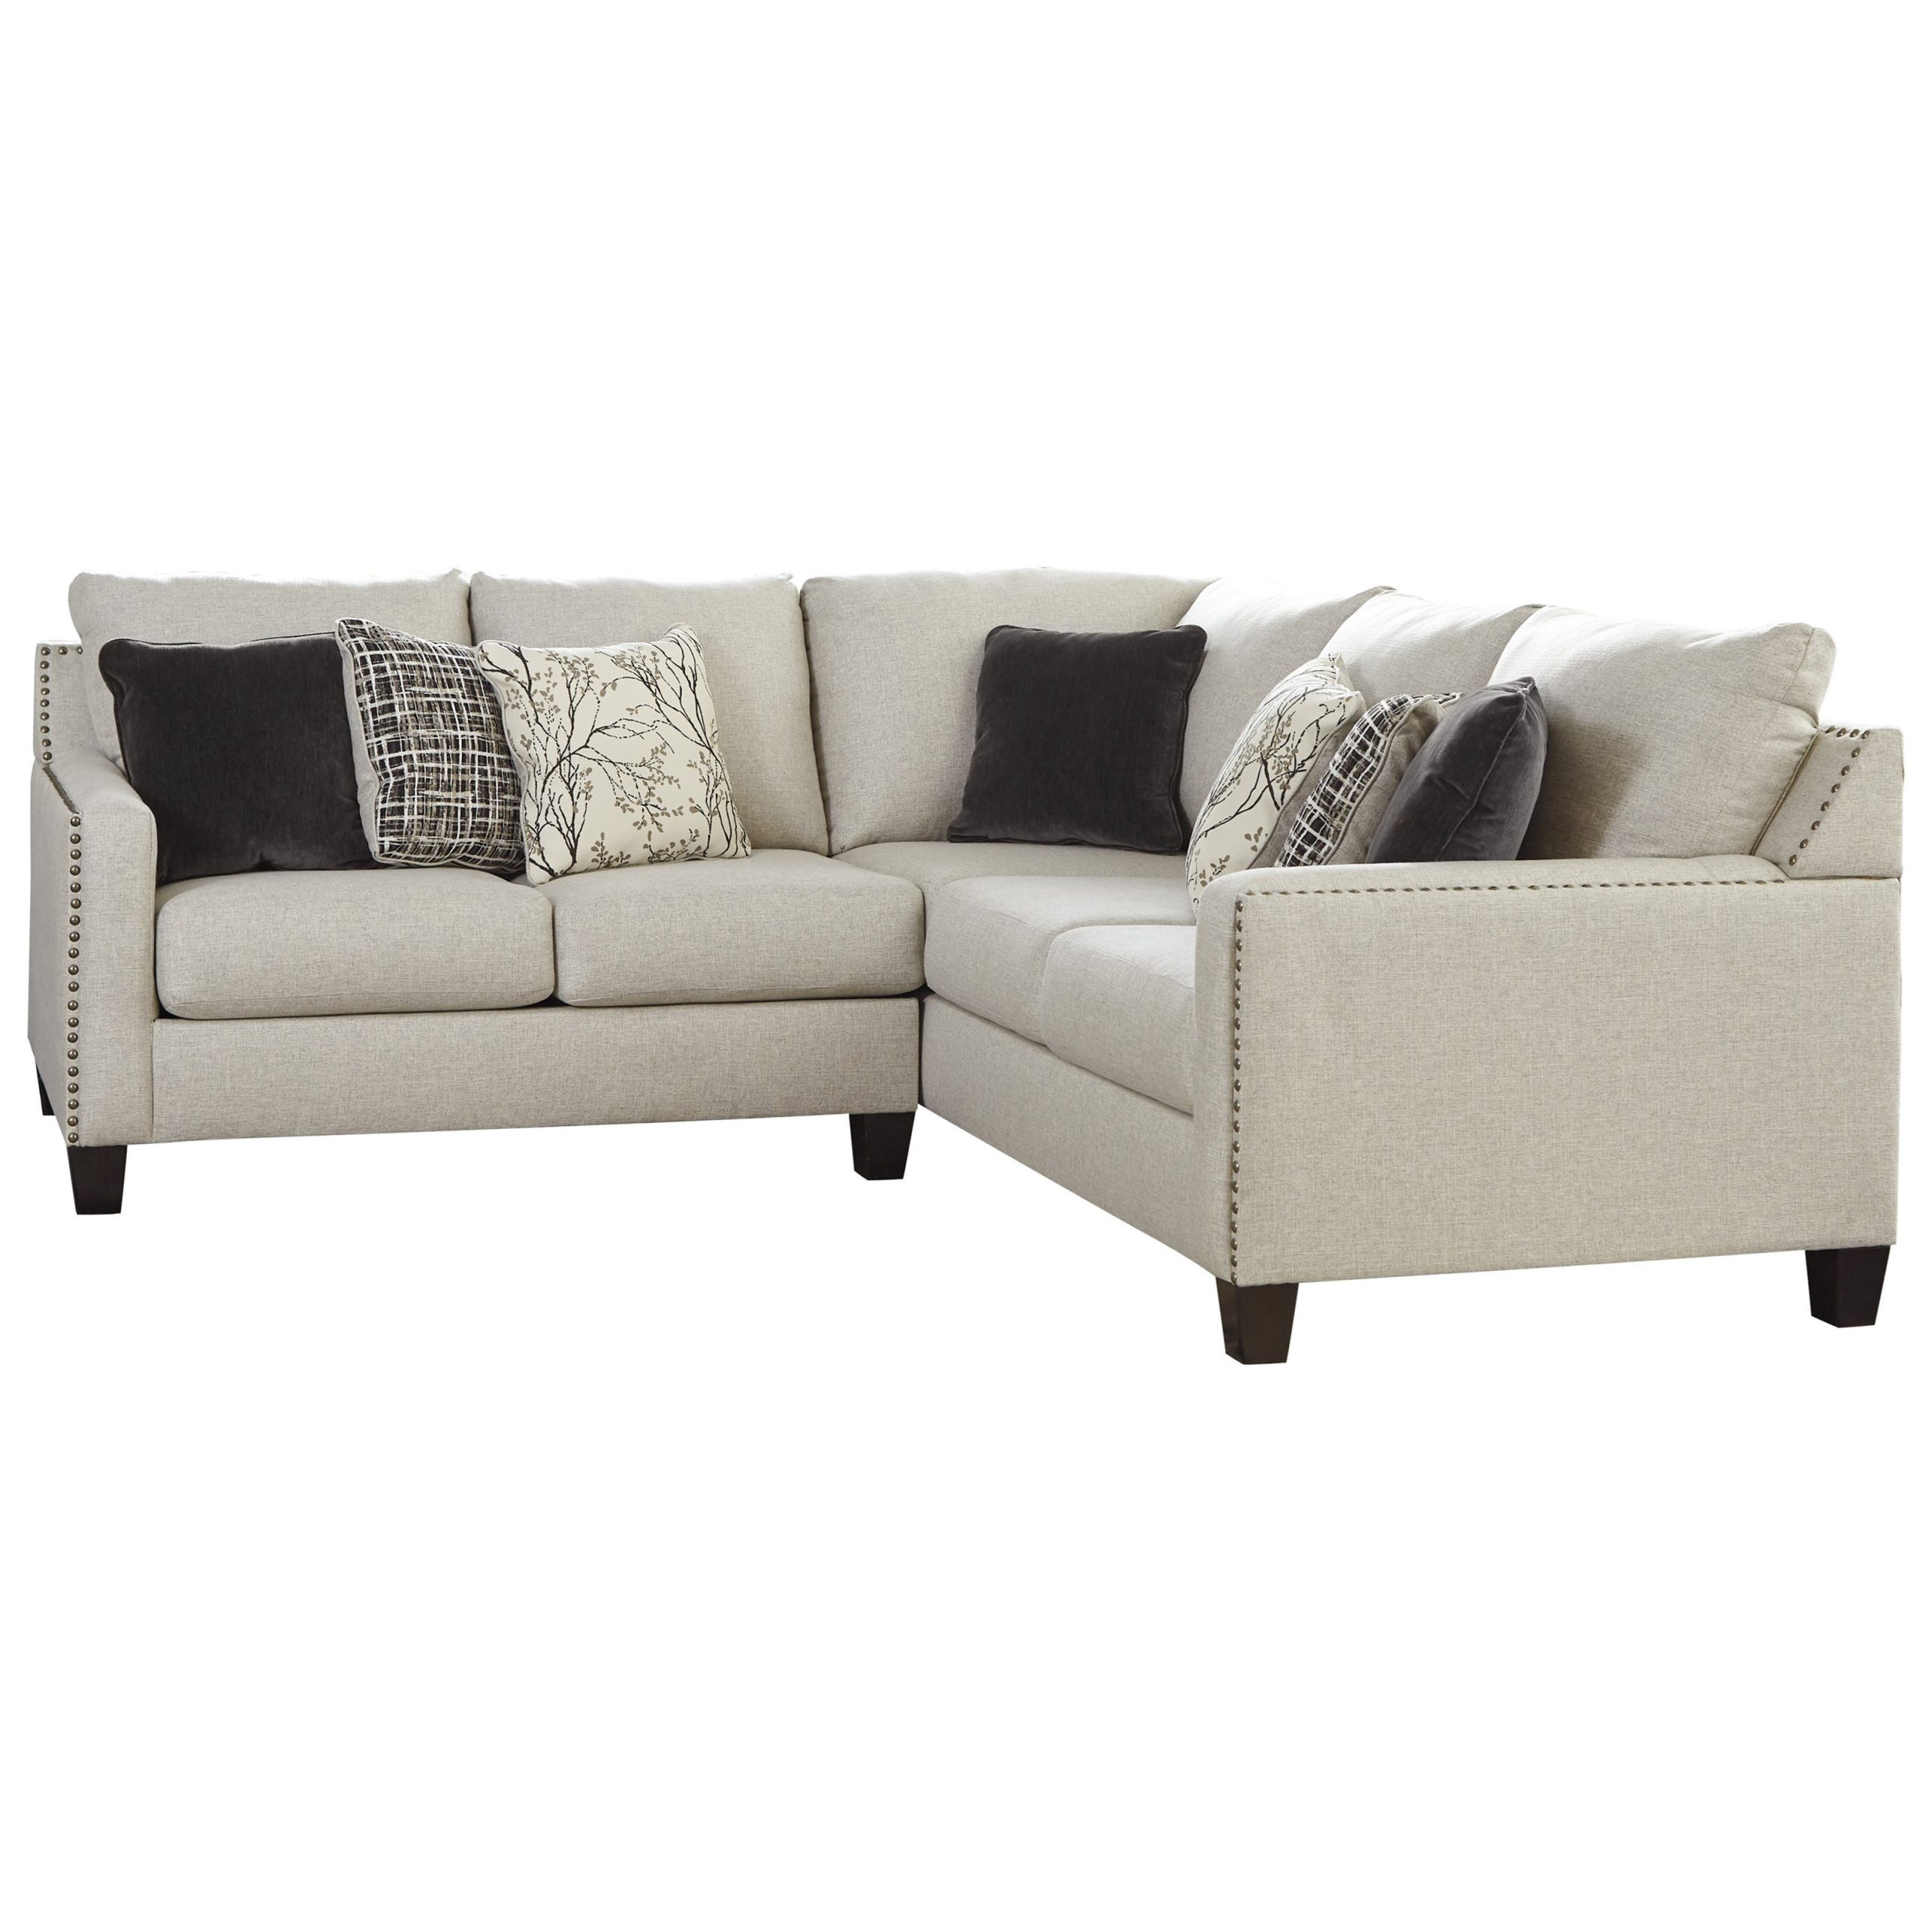 Rochester Ny Sectional Soffor